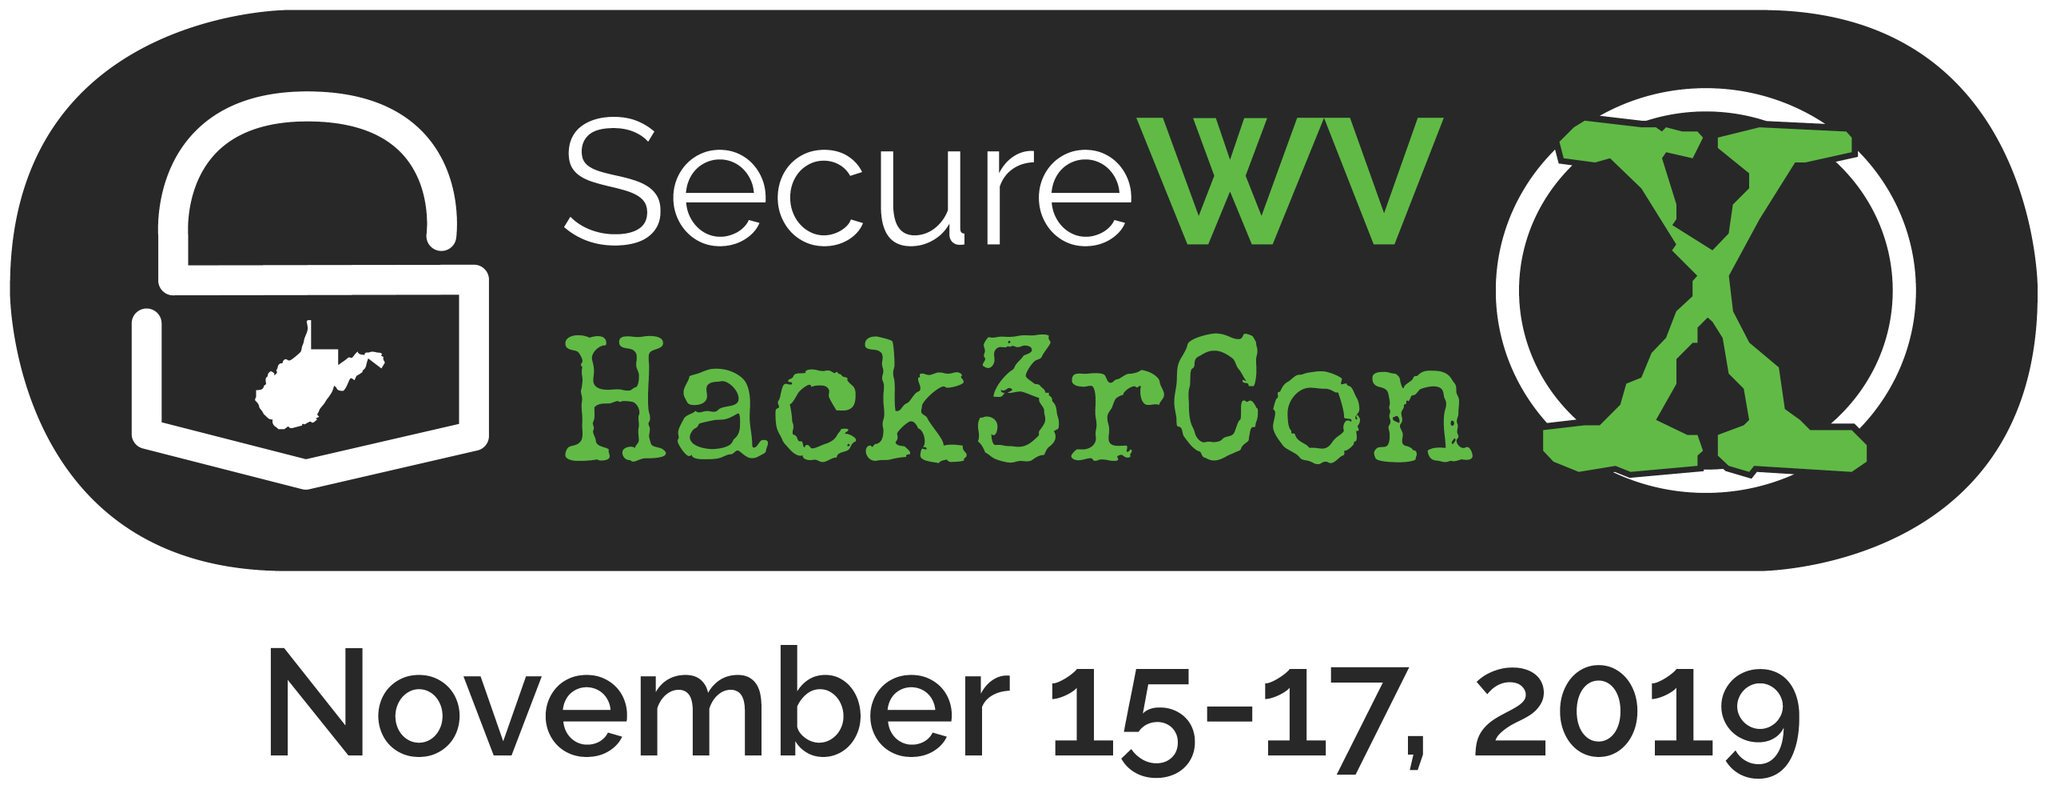 SecureWVLogo.jpg